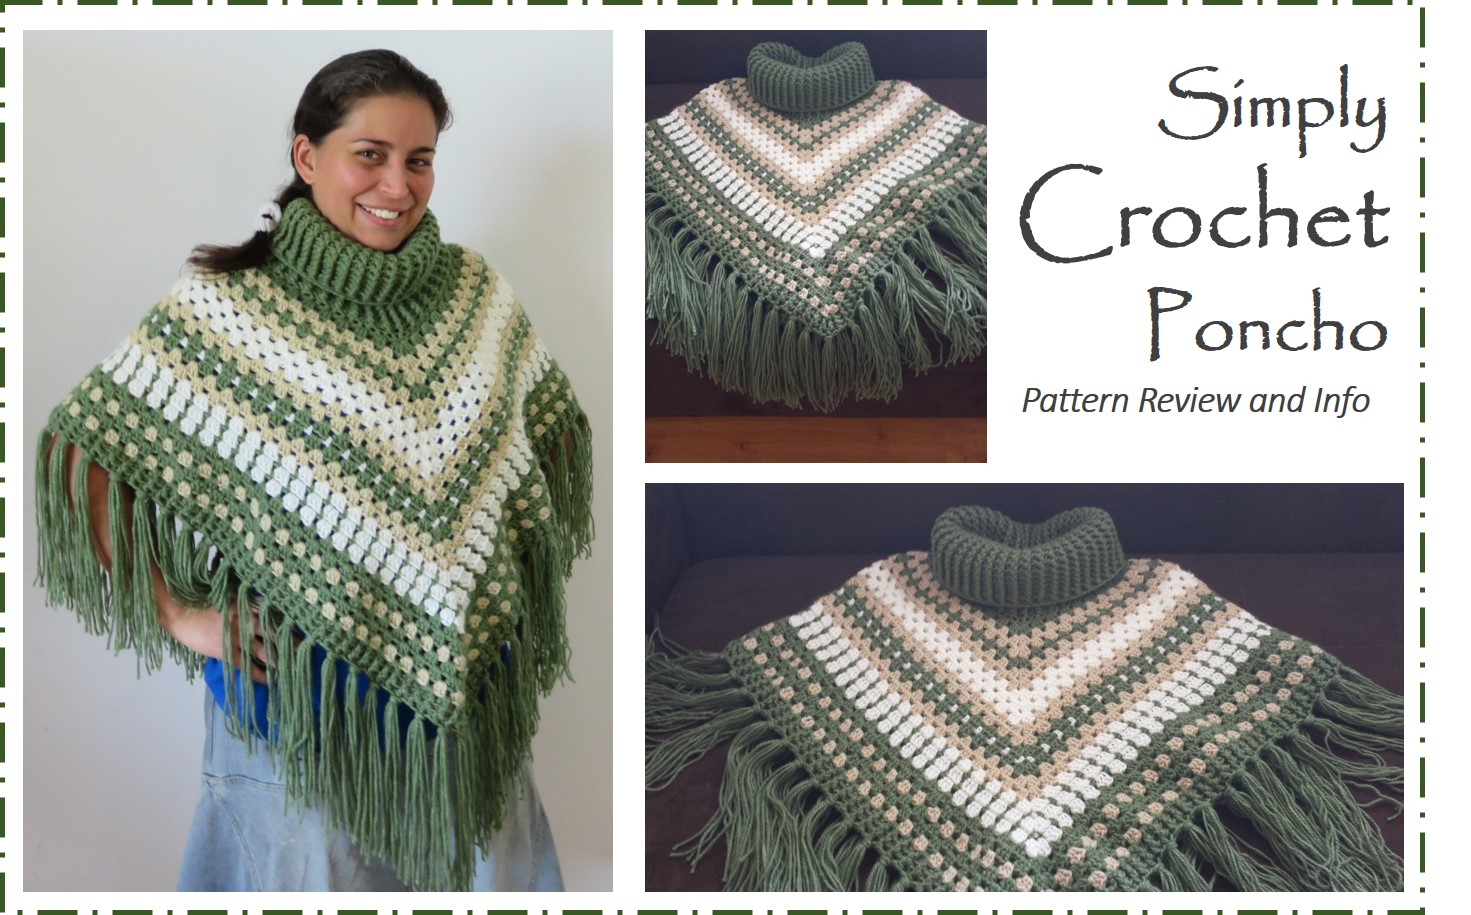 Jungling the odds simply crochet cowl neck poncho pattern review simply crochet cowl neck poncho pattern review and info bankloansurffo Gallery